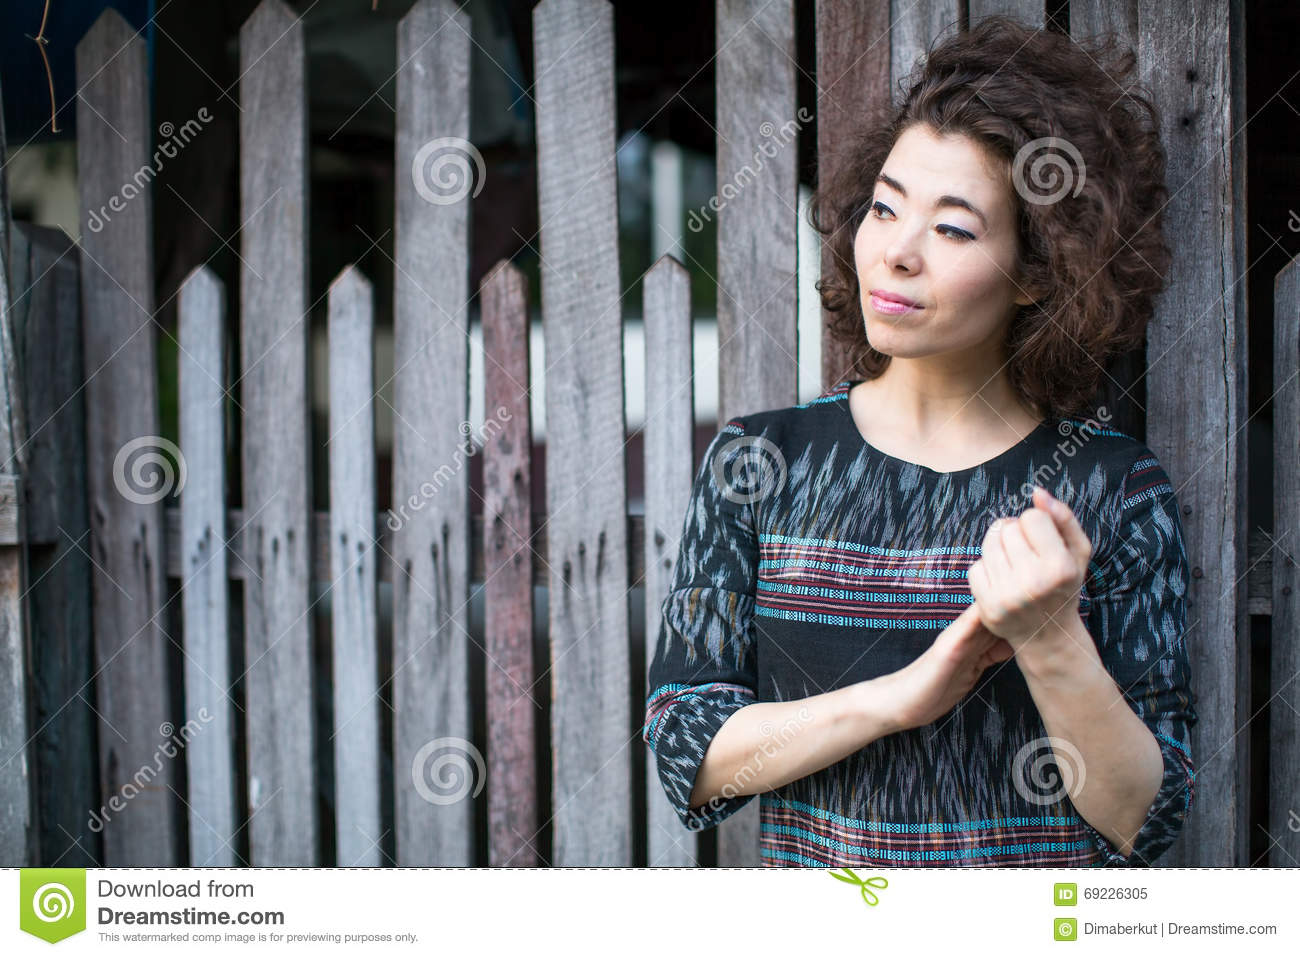 asian single women in fence Download sitting on the fence stock photos affordable and search from millions of royalty free images, photos and vectors.